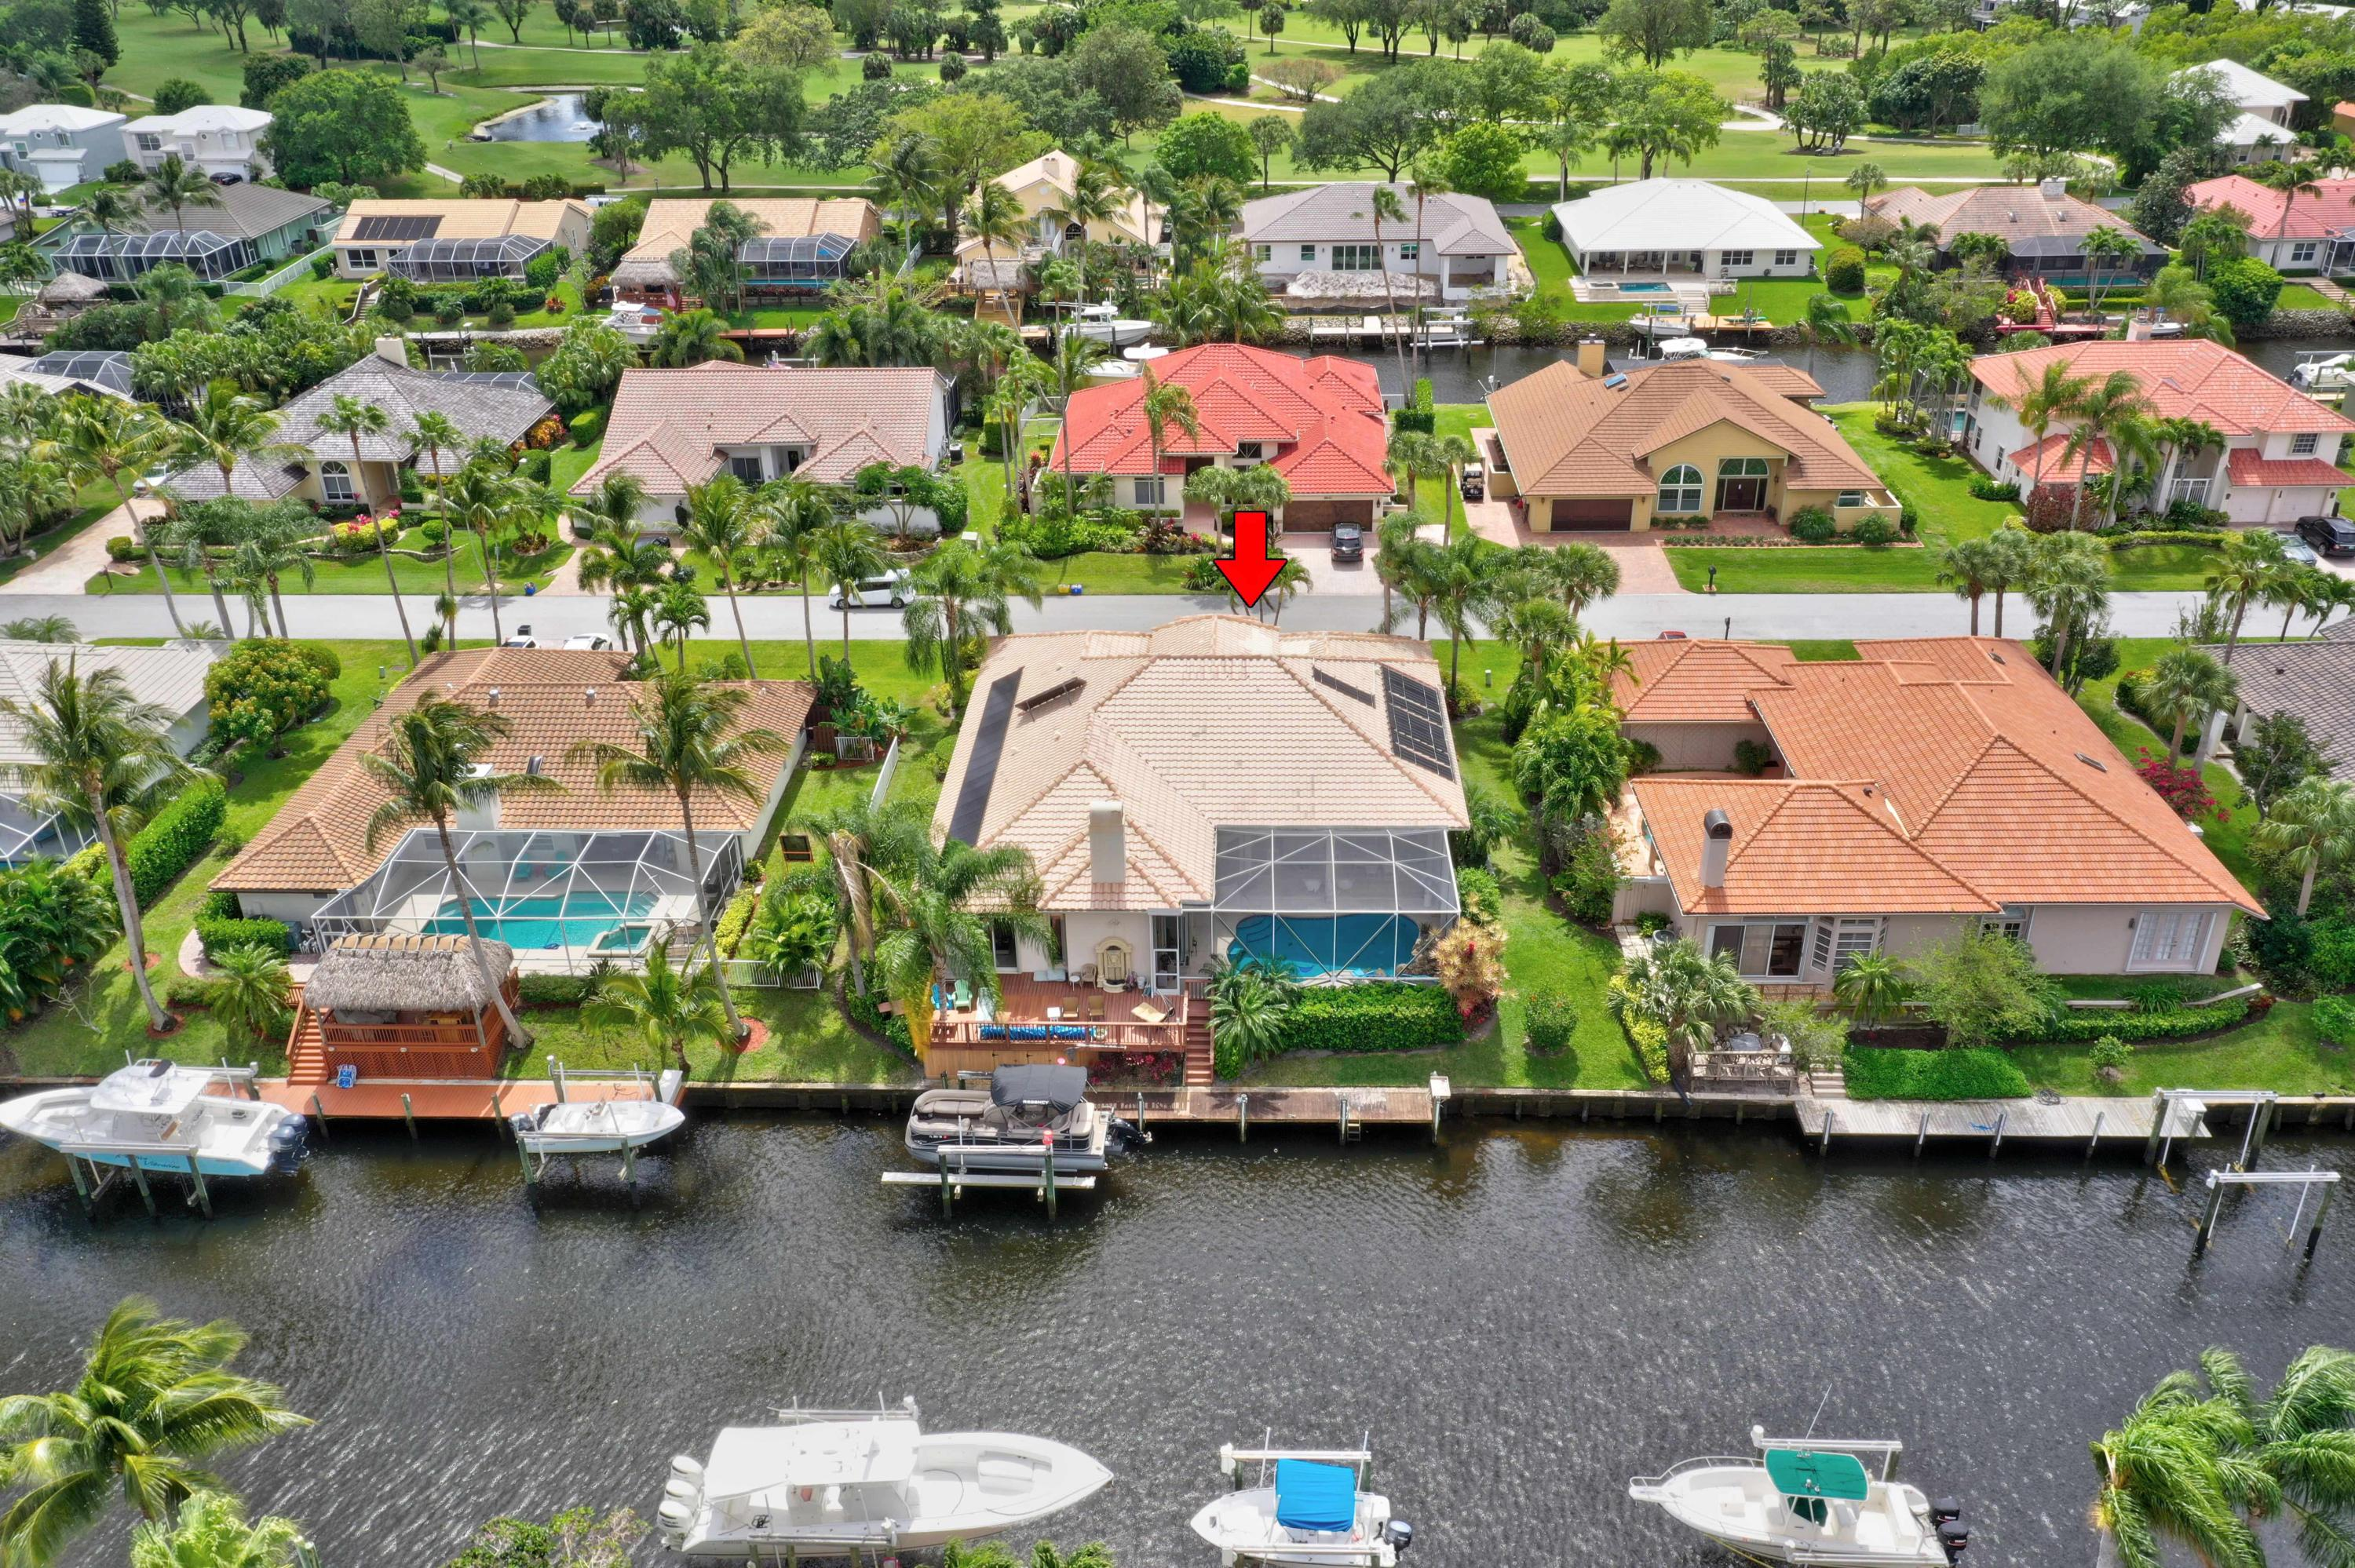 NORTH PASSAGE TEQUESTA REAL ESTATE